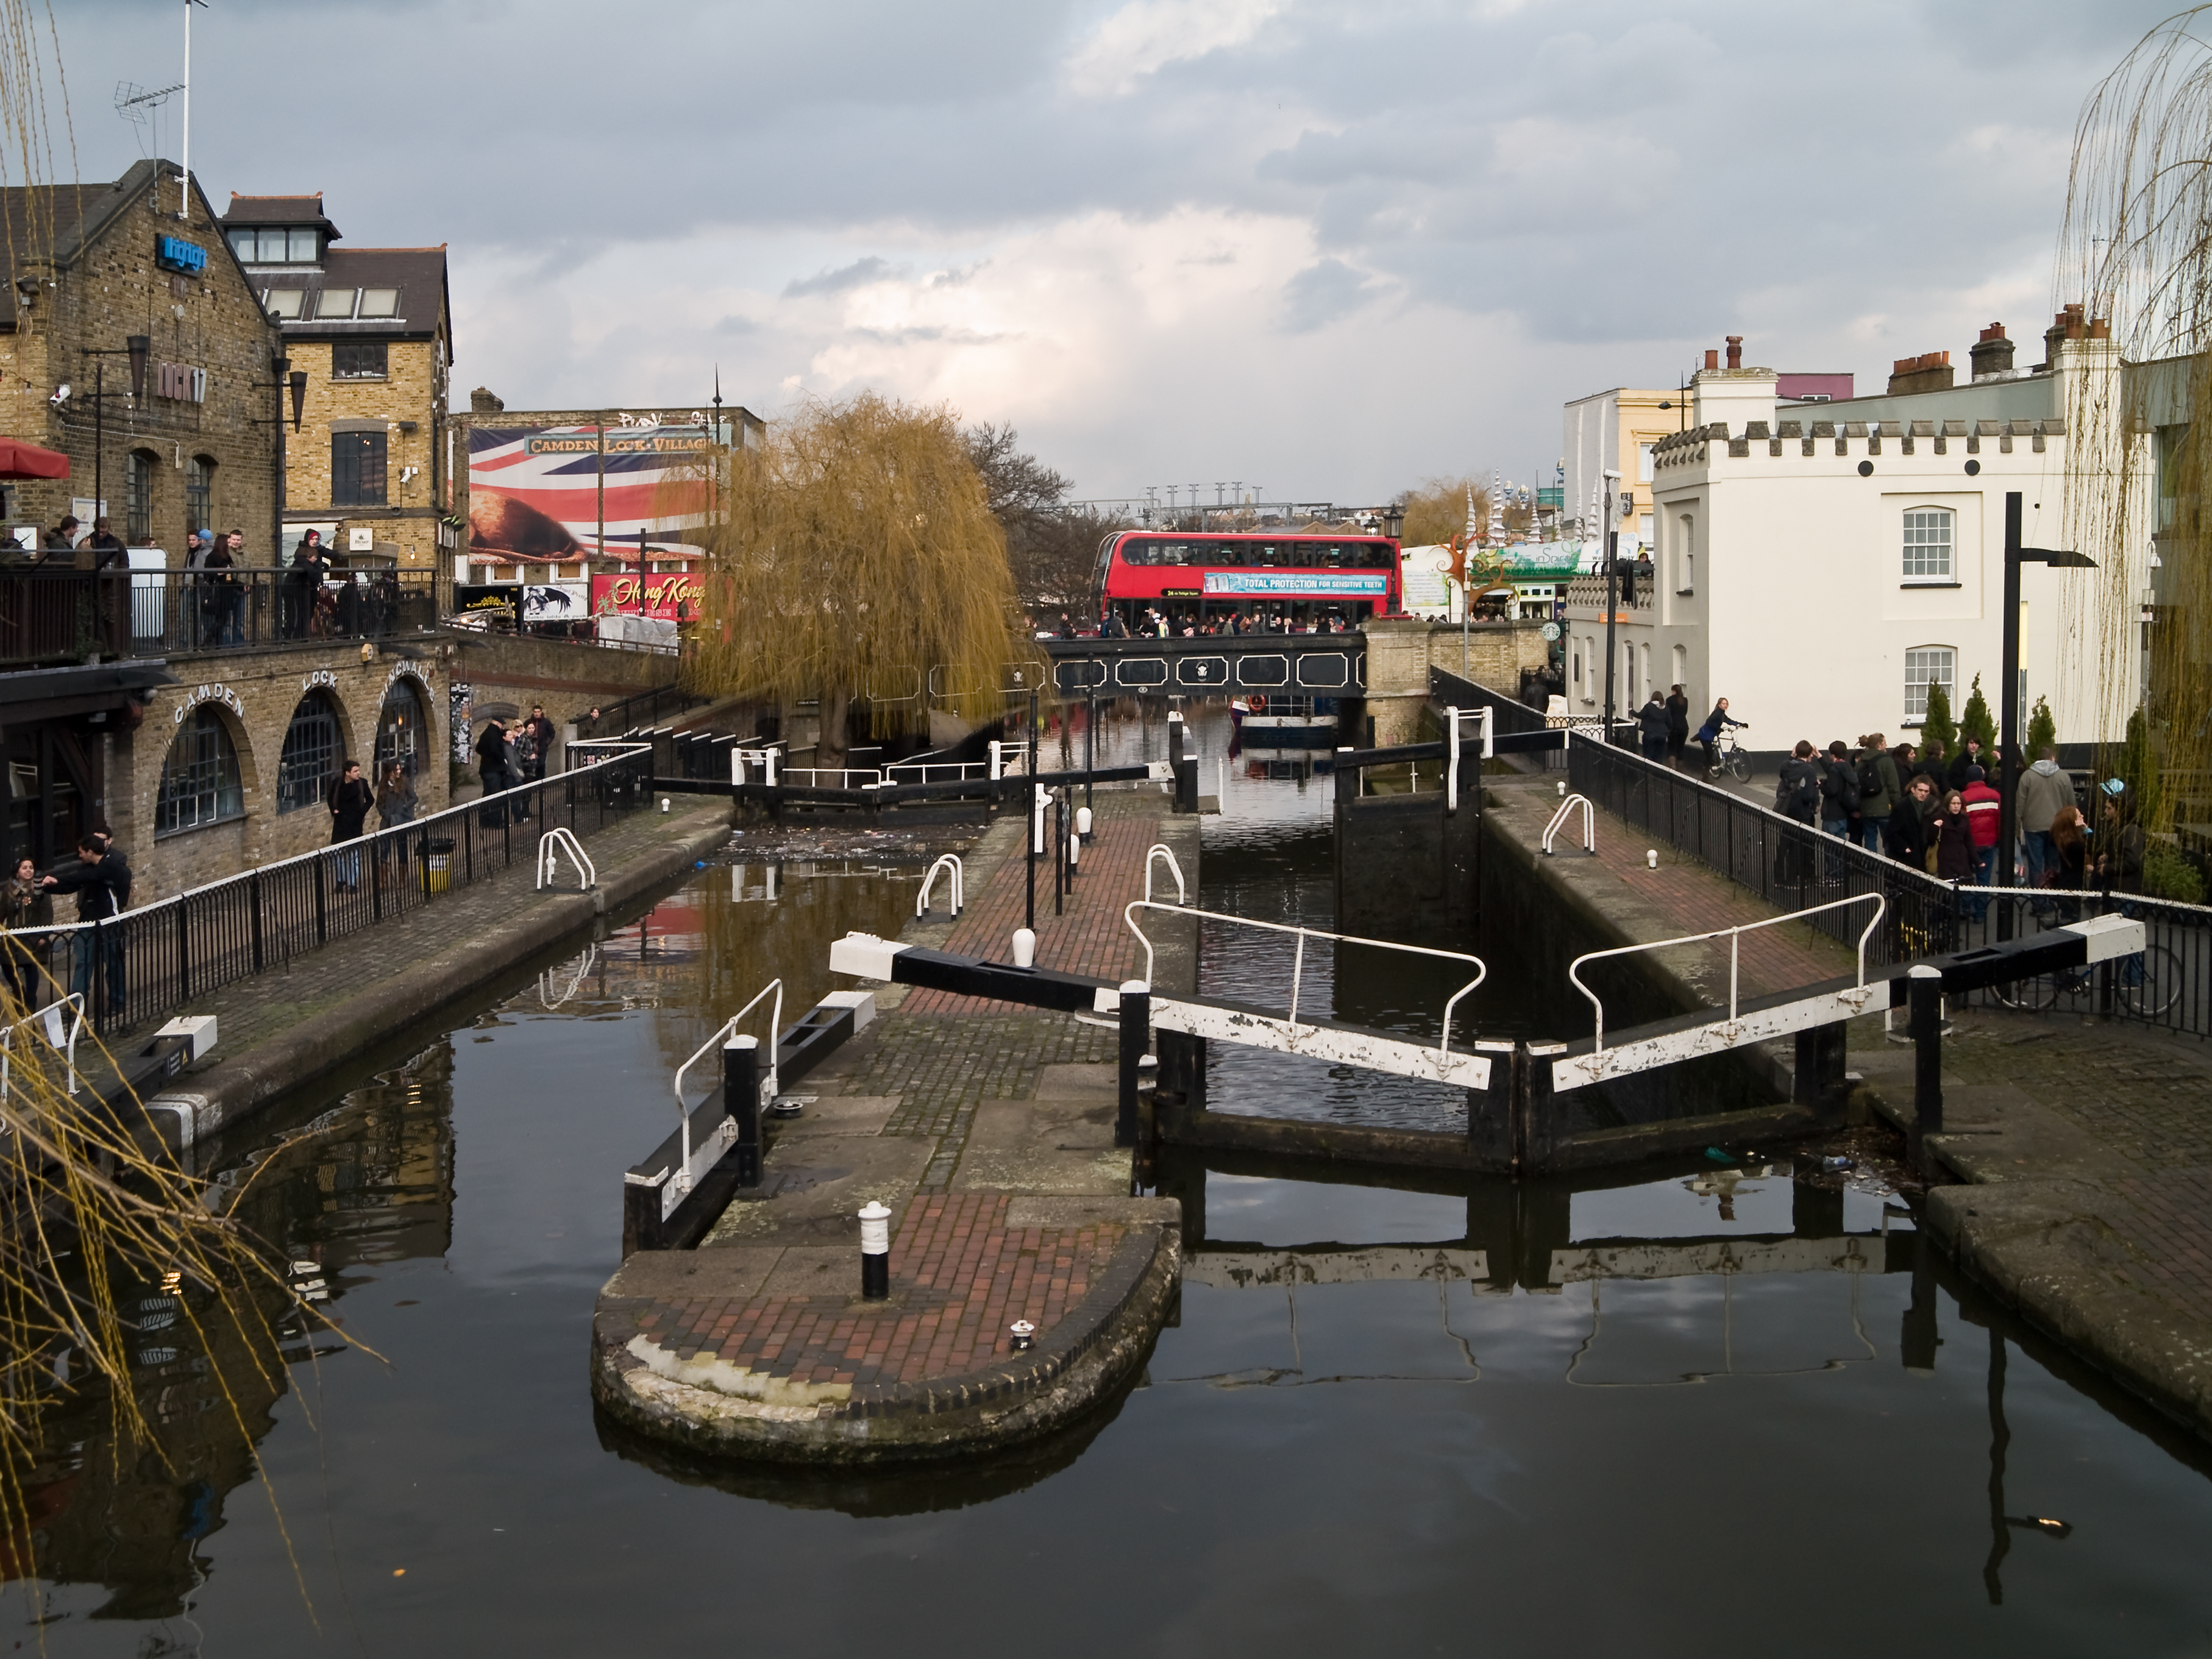 Dating in camden town